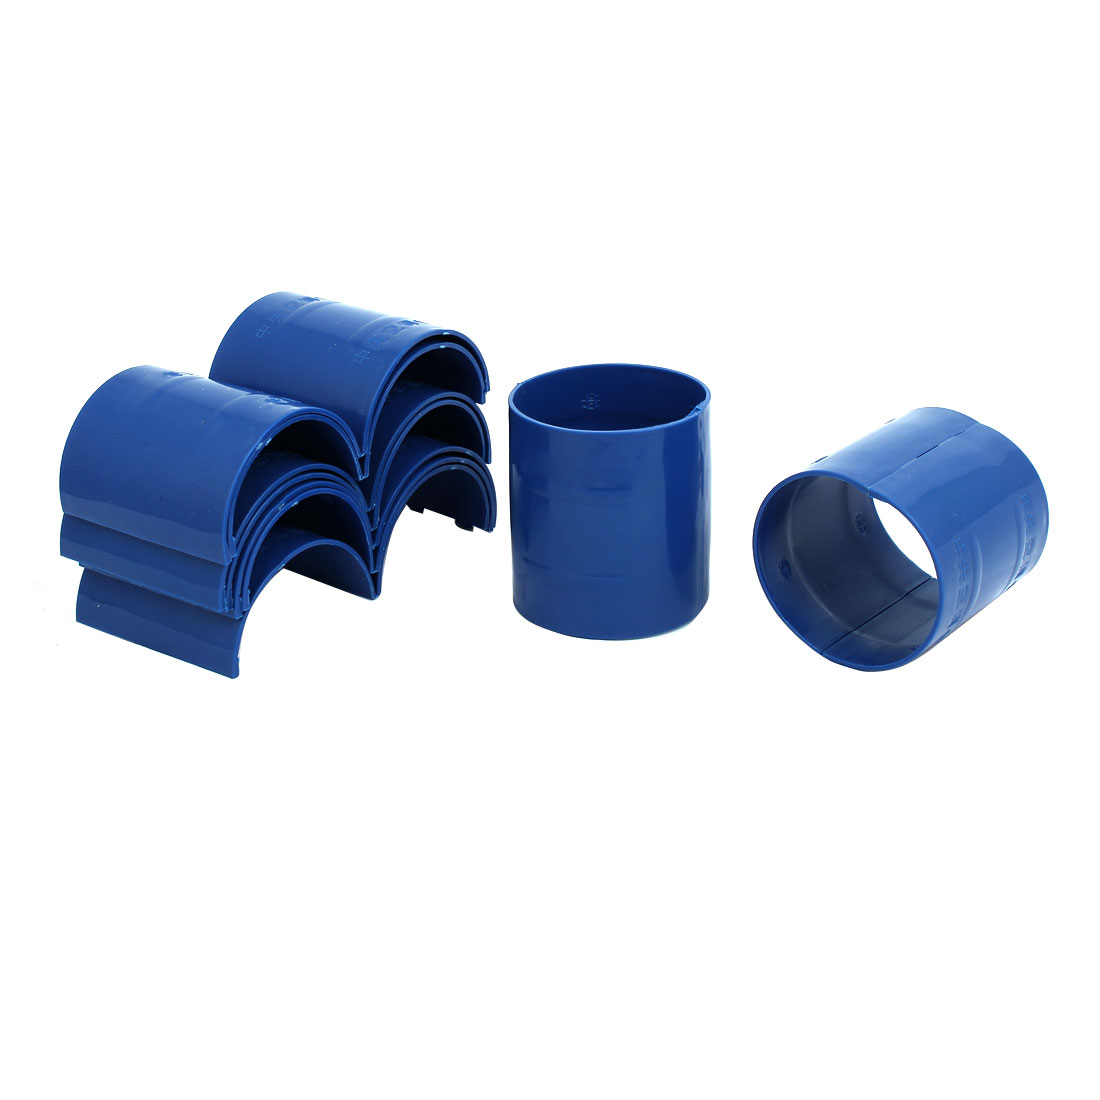 75mm Dia 2mm Thickness Central Air Conditioning Pipe Tube Clamp Blue 9pcs